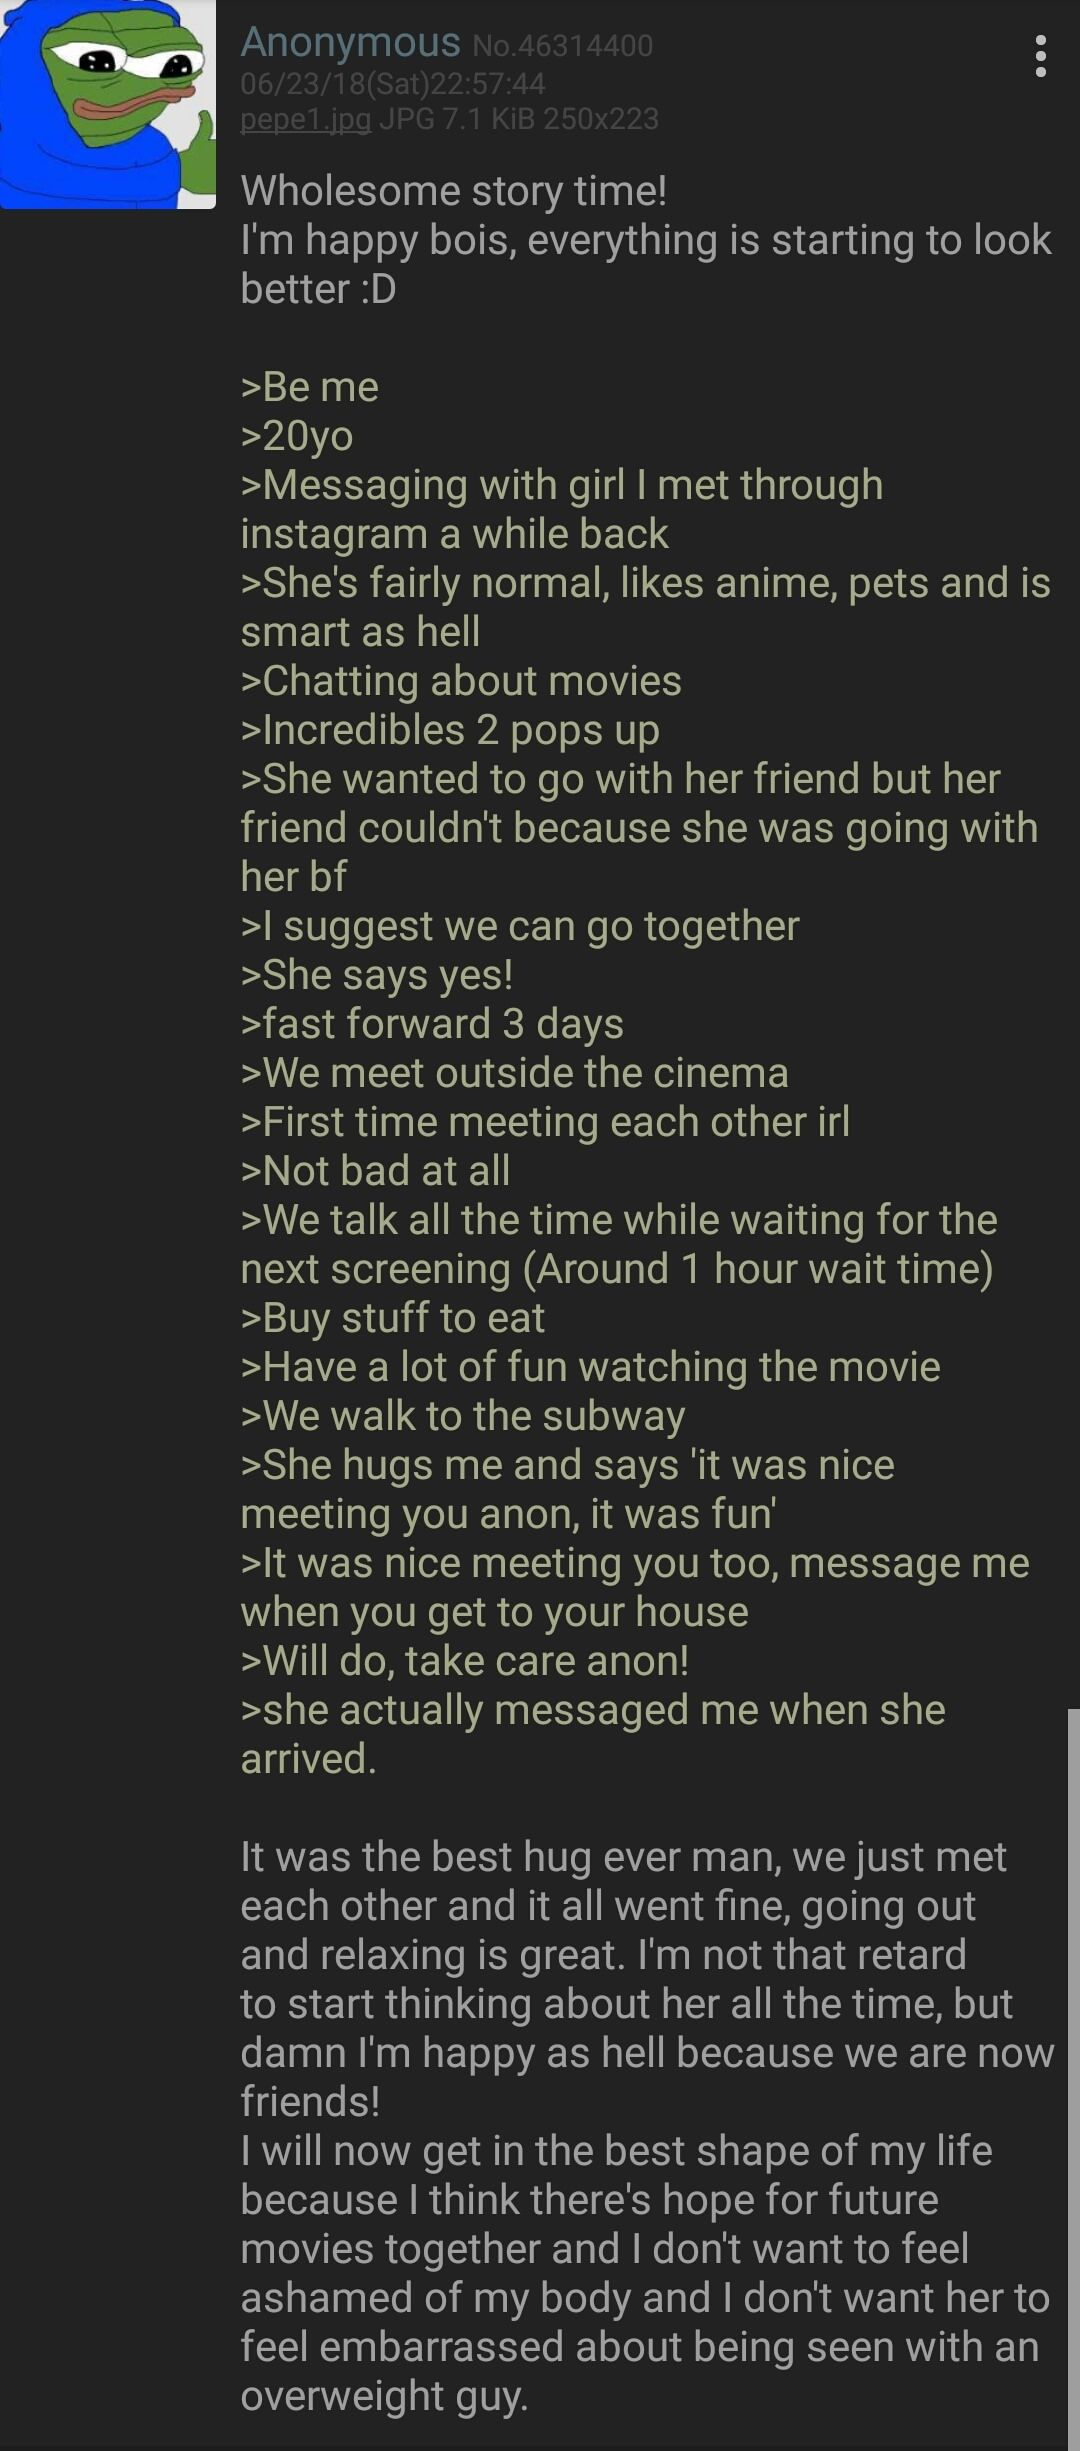 Anon is wholesomely happy